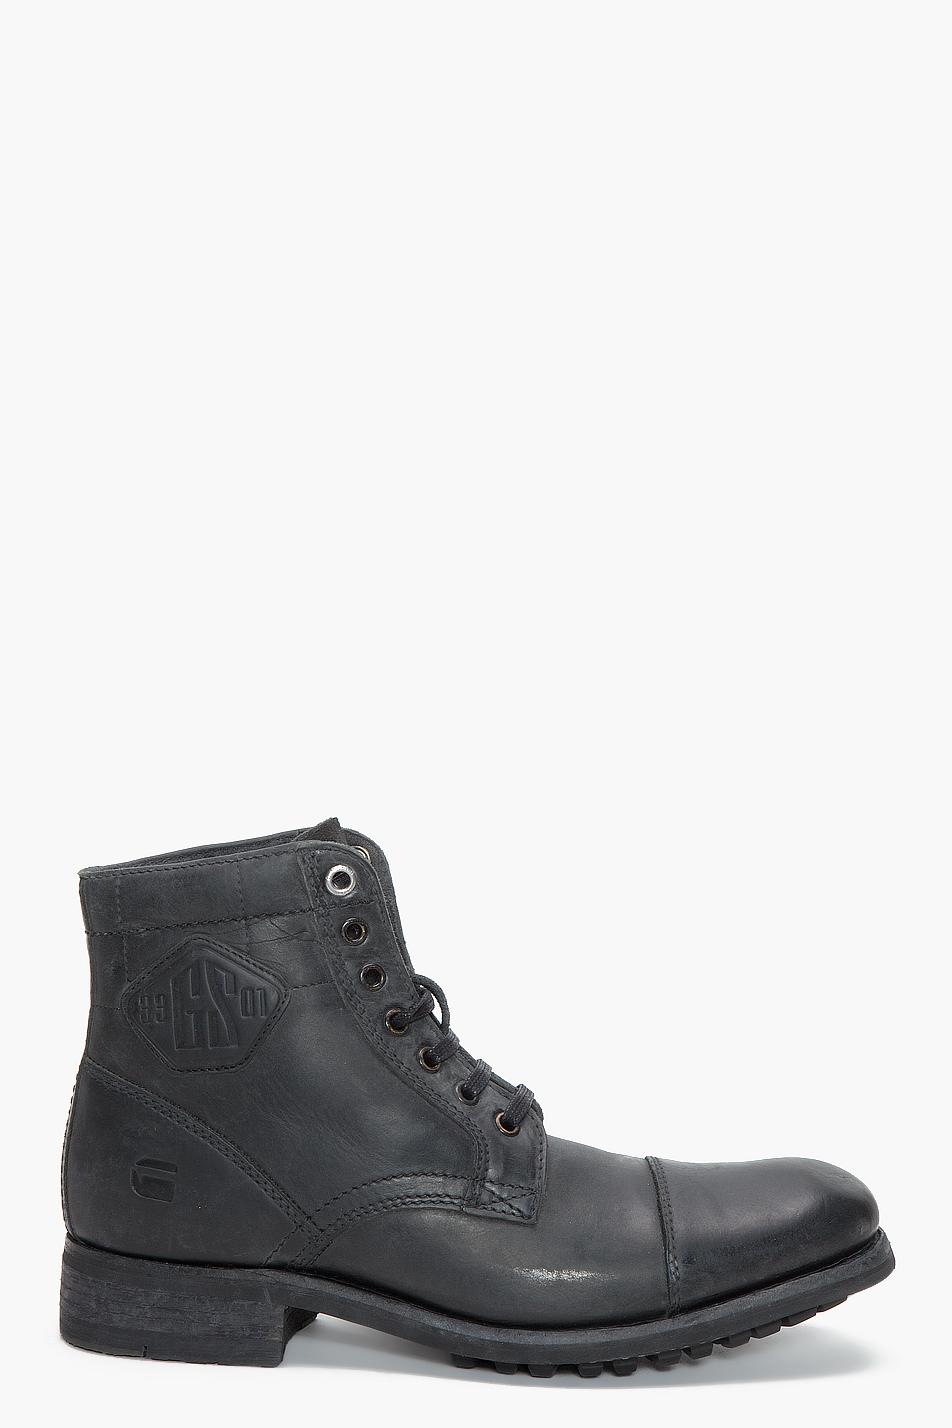 g star raw patton ii charger iii boots in black for men lyst. Black Bedroom Furniture Sets. Home Design Ideas